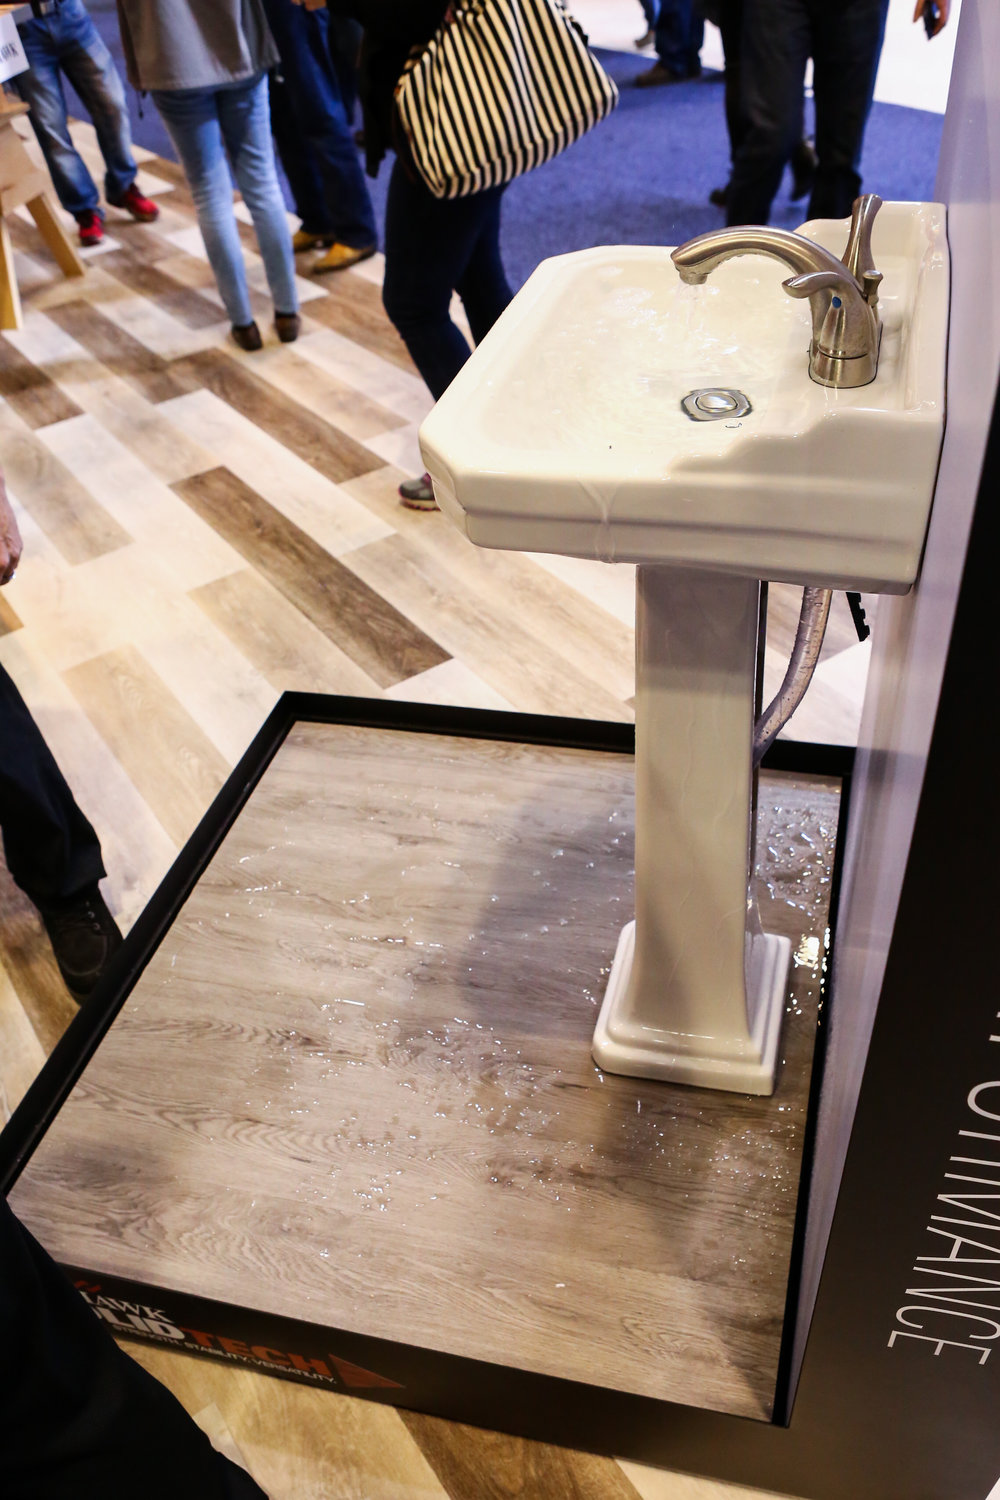 Waterproof Mohawk SolidTech vinyl flooring display at KBIS 2017. photo by Felix O.B/ FXO Photography